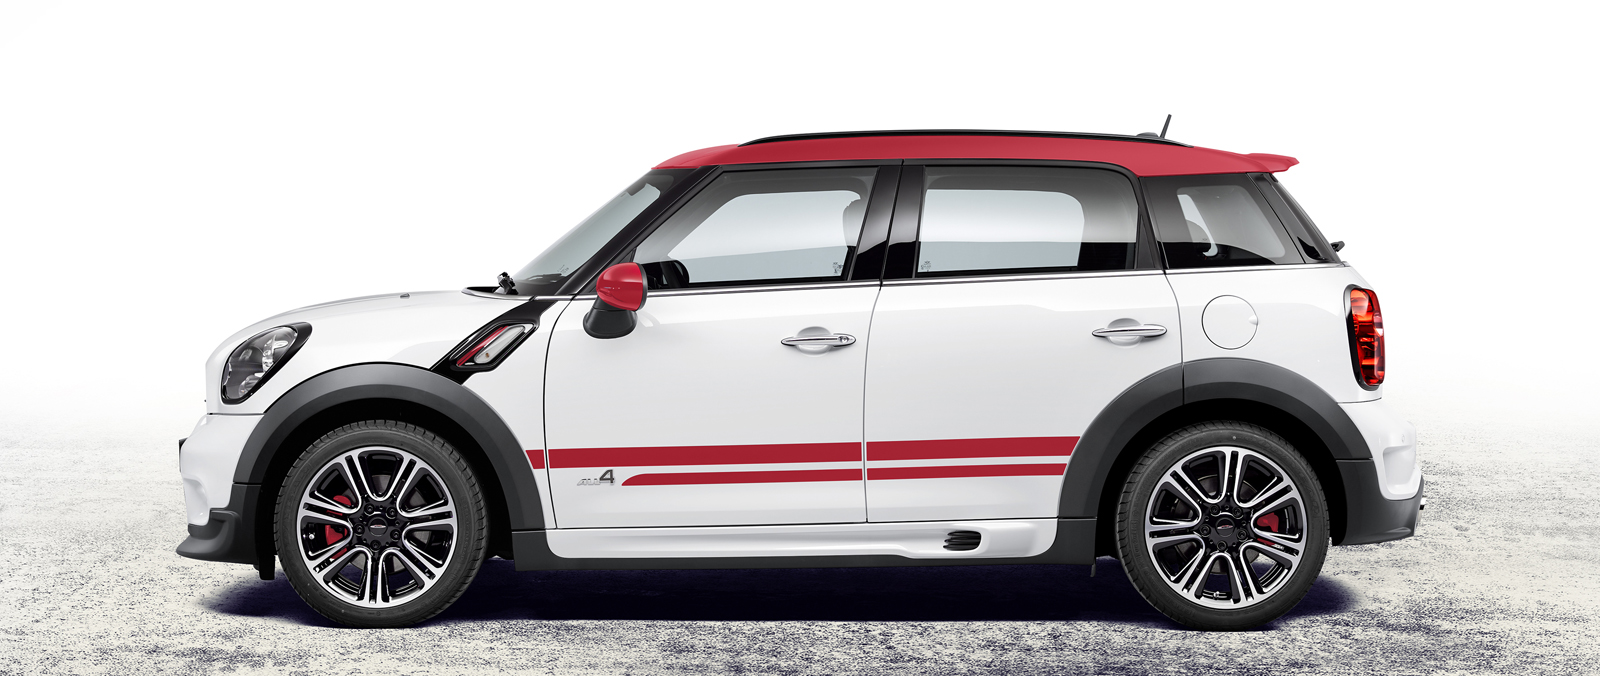 Mini John Cooper Works Countryman uit Born is klaar